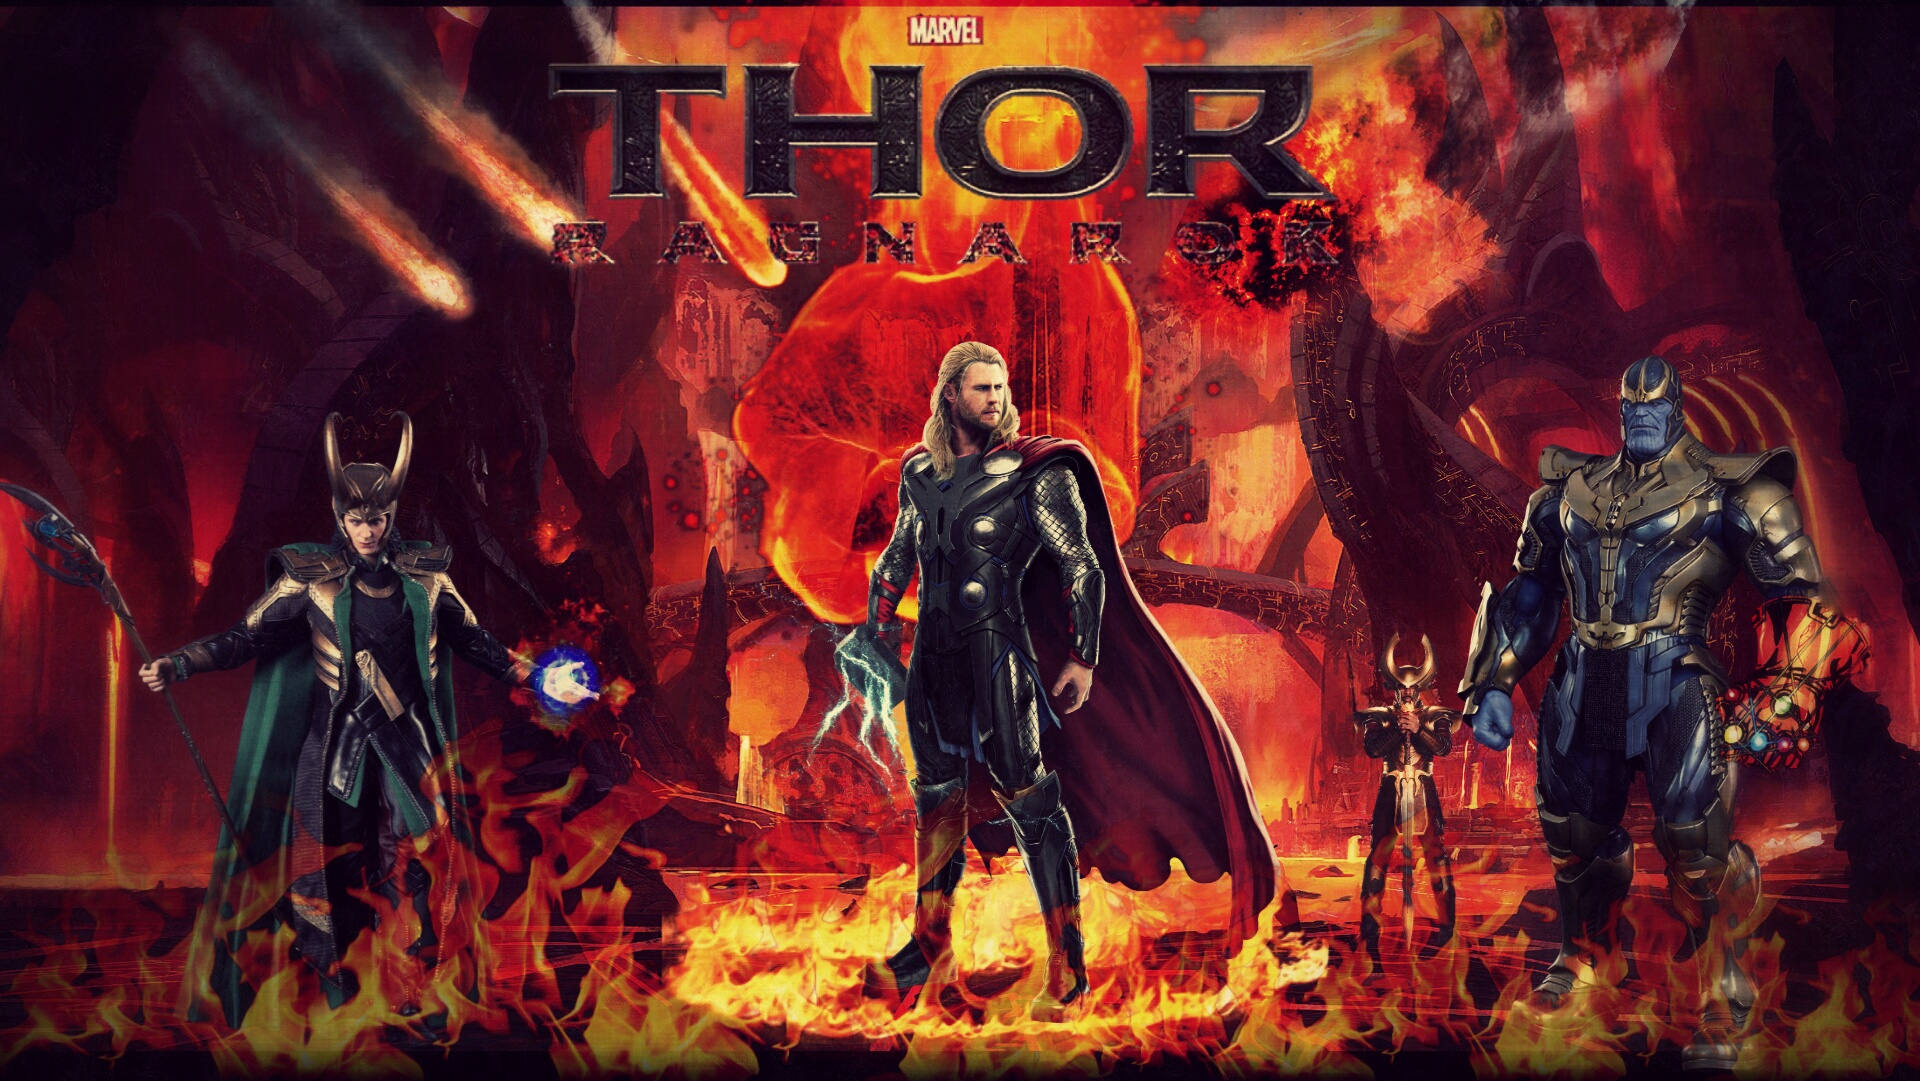 Thor ragnarok hd wallpaper by theincrediblejake on deviantart - Ragnarok wallpaper ...